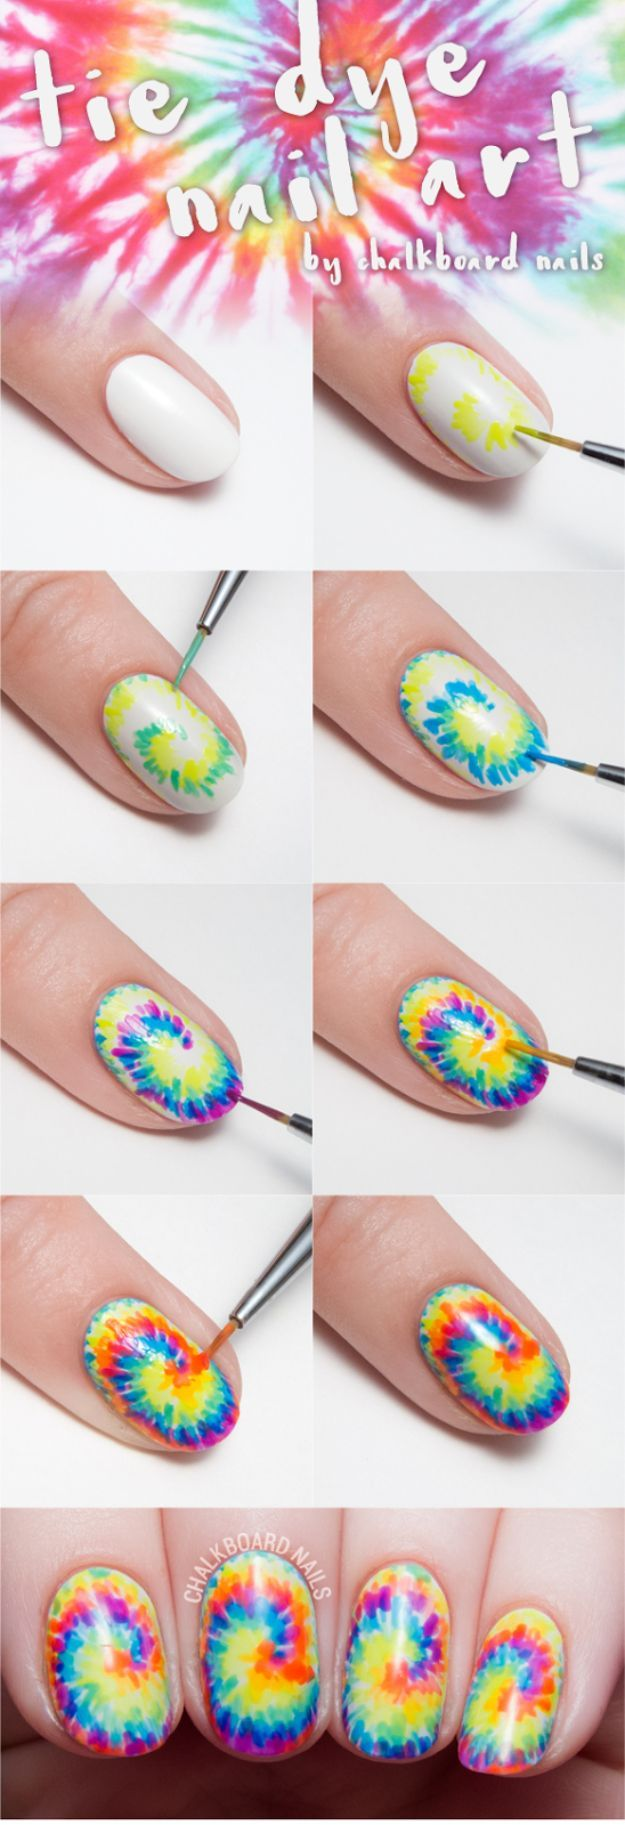 Need Some New Nail Art Ideas You Can Try At Home? Check Out These Step